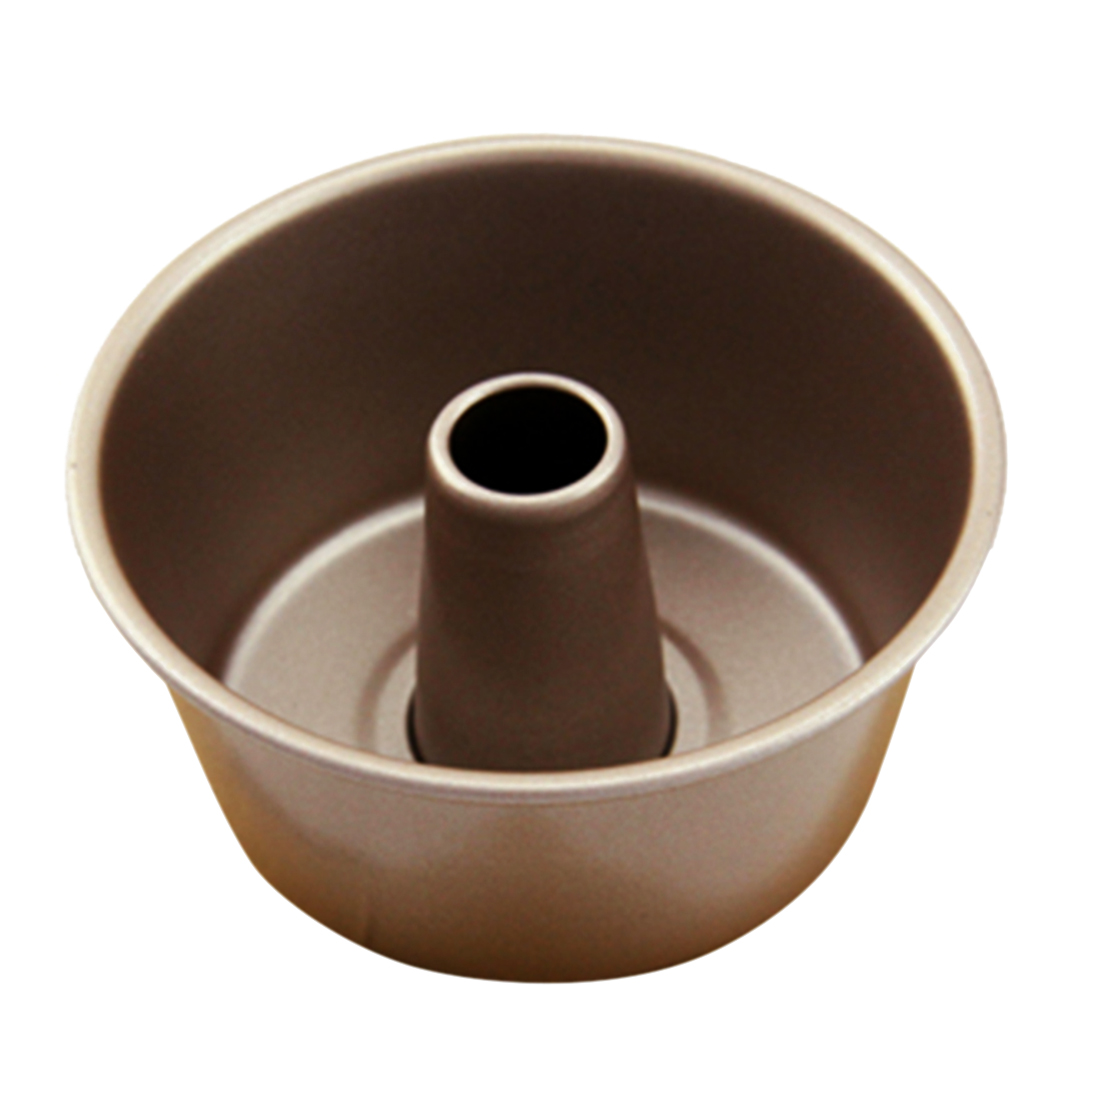 Baking Cake Fondant Craft DIY Carbon Steel Non-stick Coating Mold Mould Pot